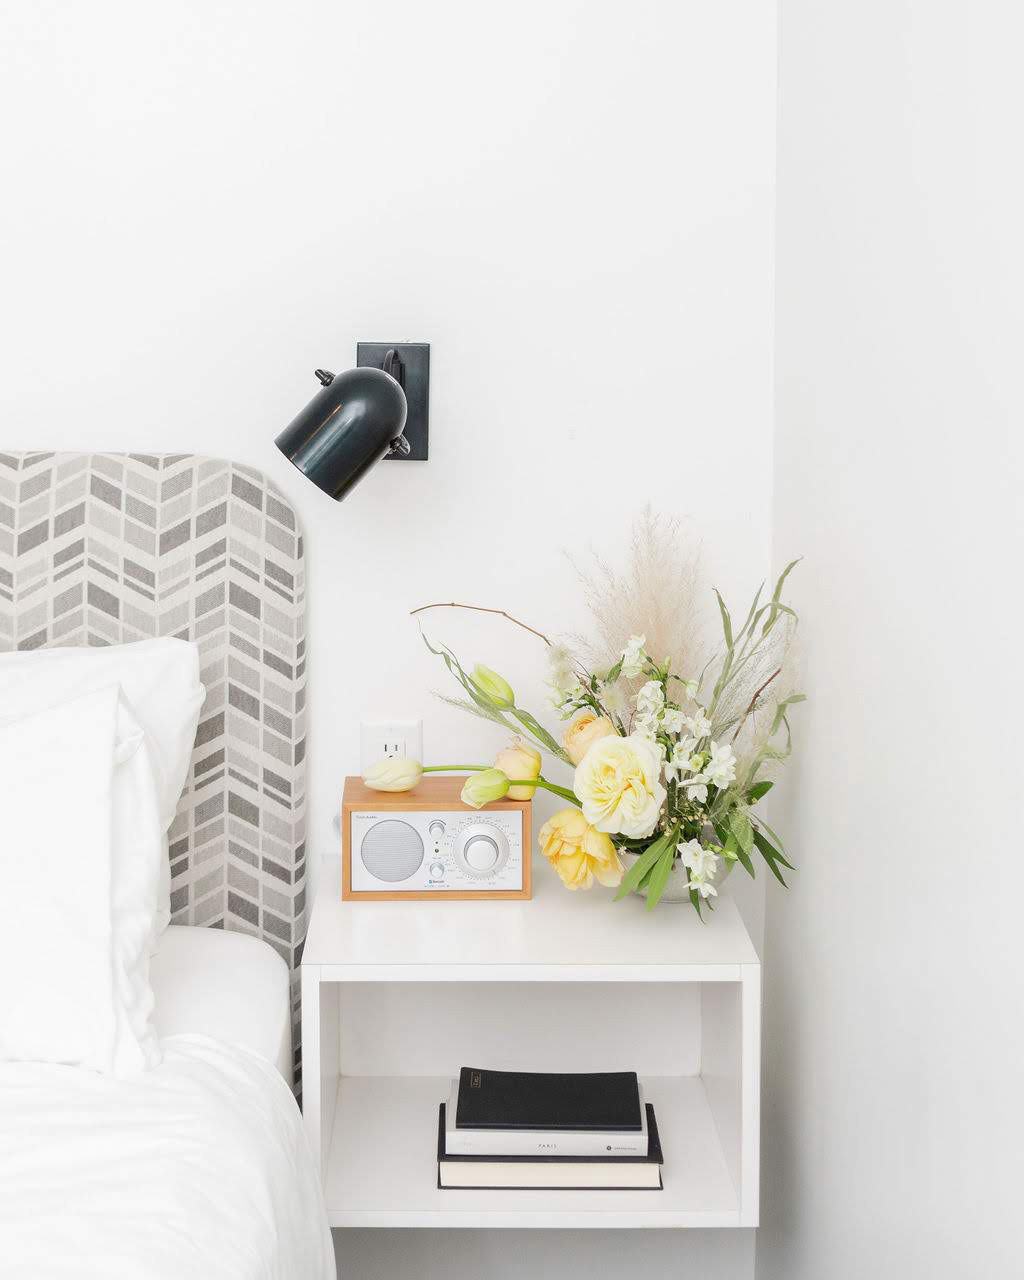 night stand with flower arrangement and partial view of bed/headboard